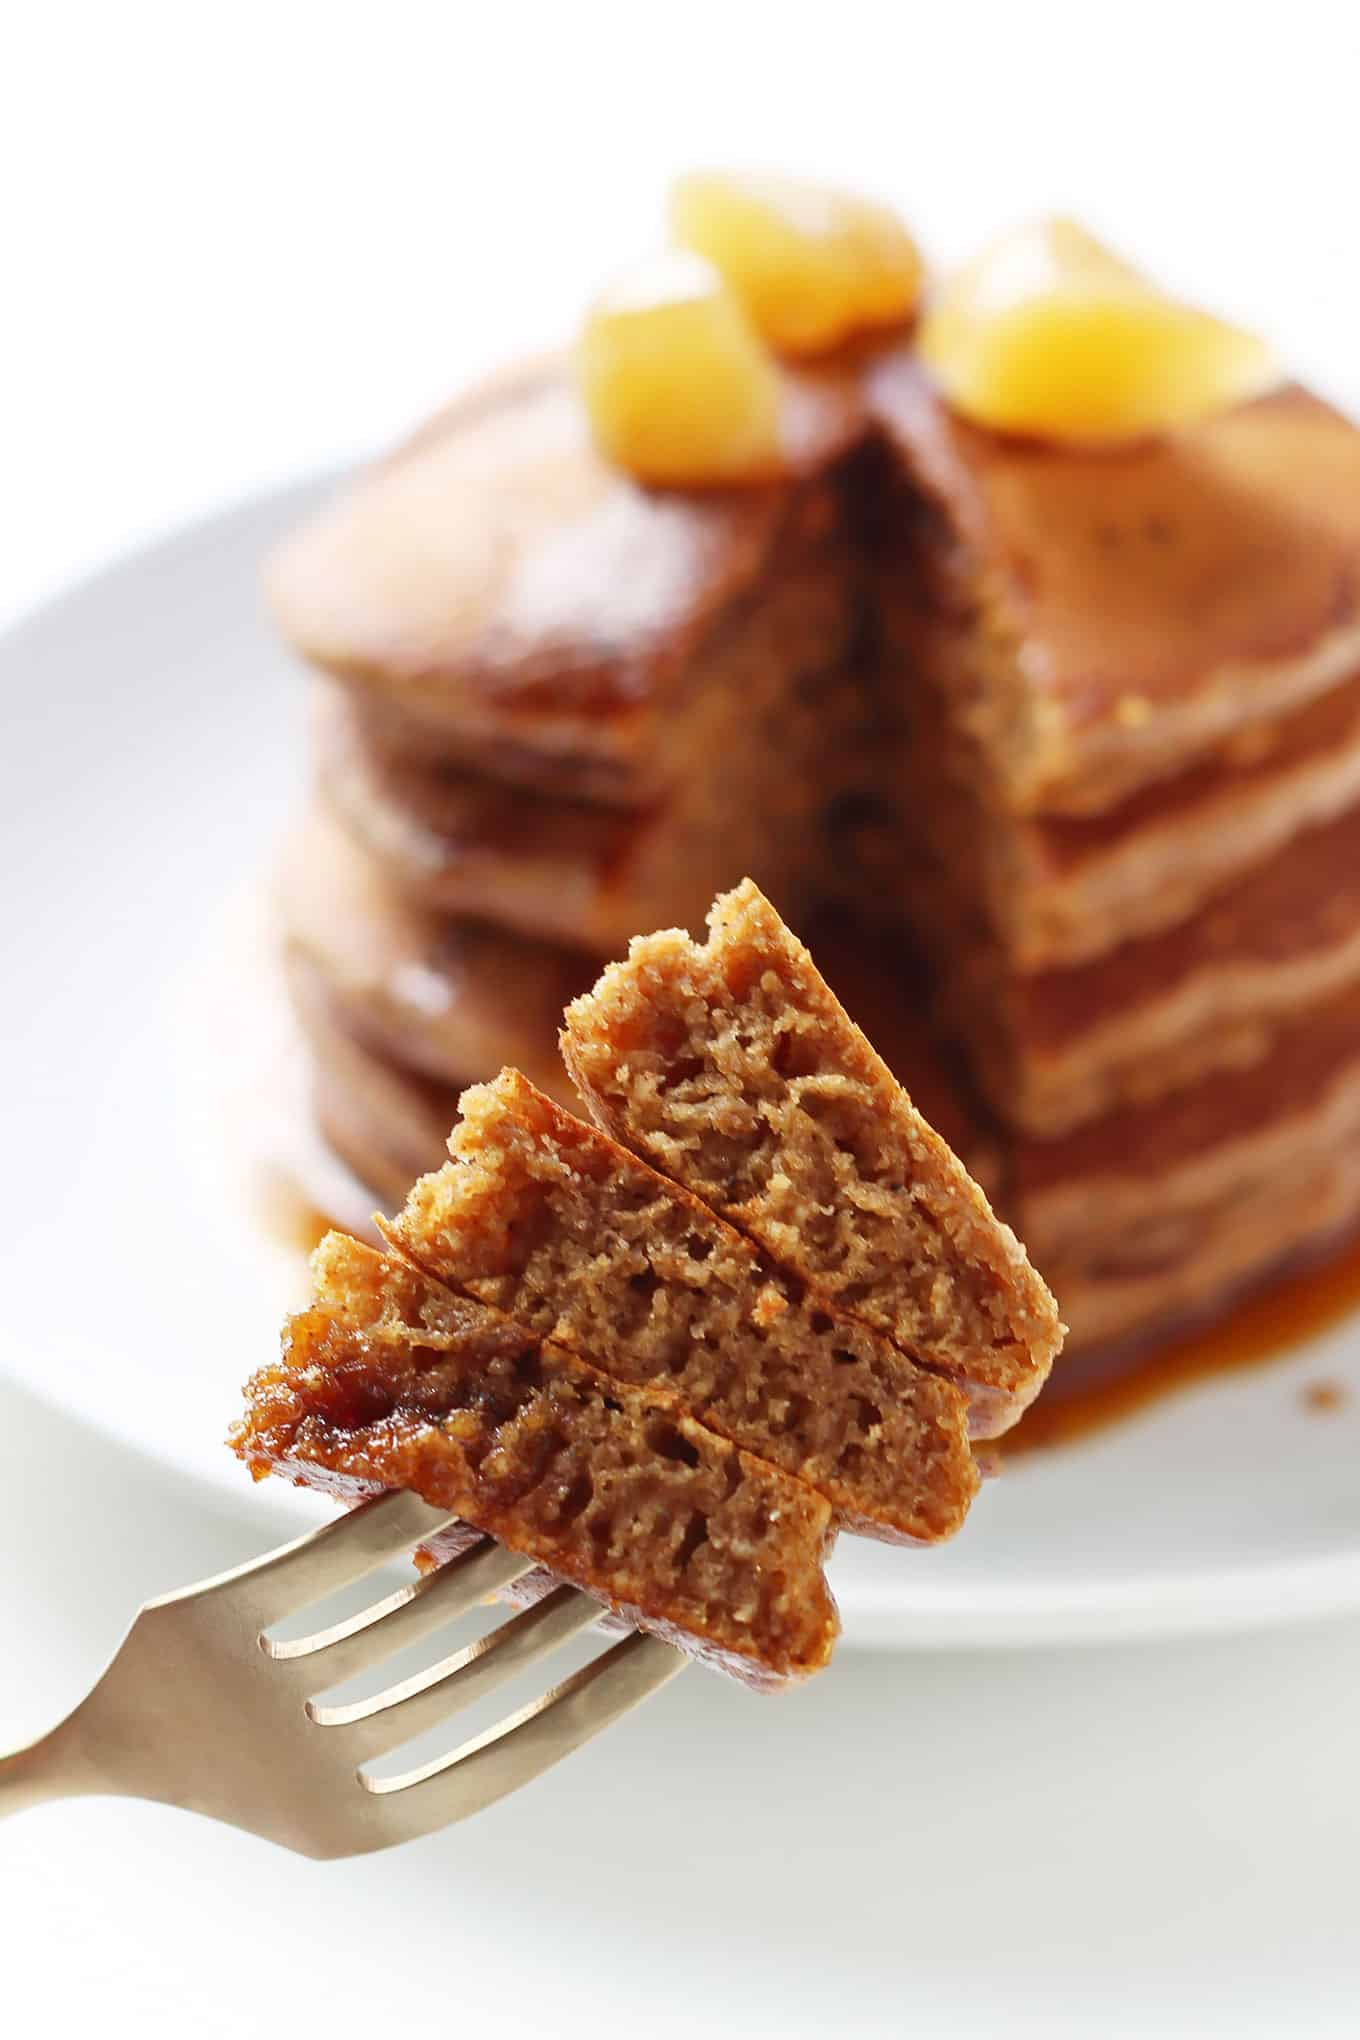 Forkful of Gingerbread Pancakes